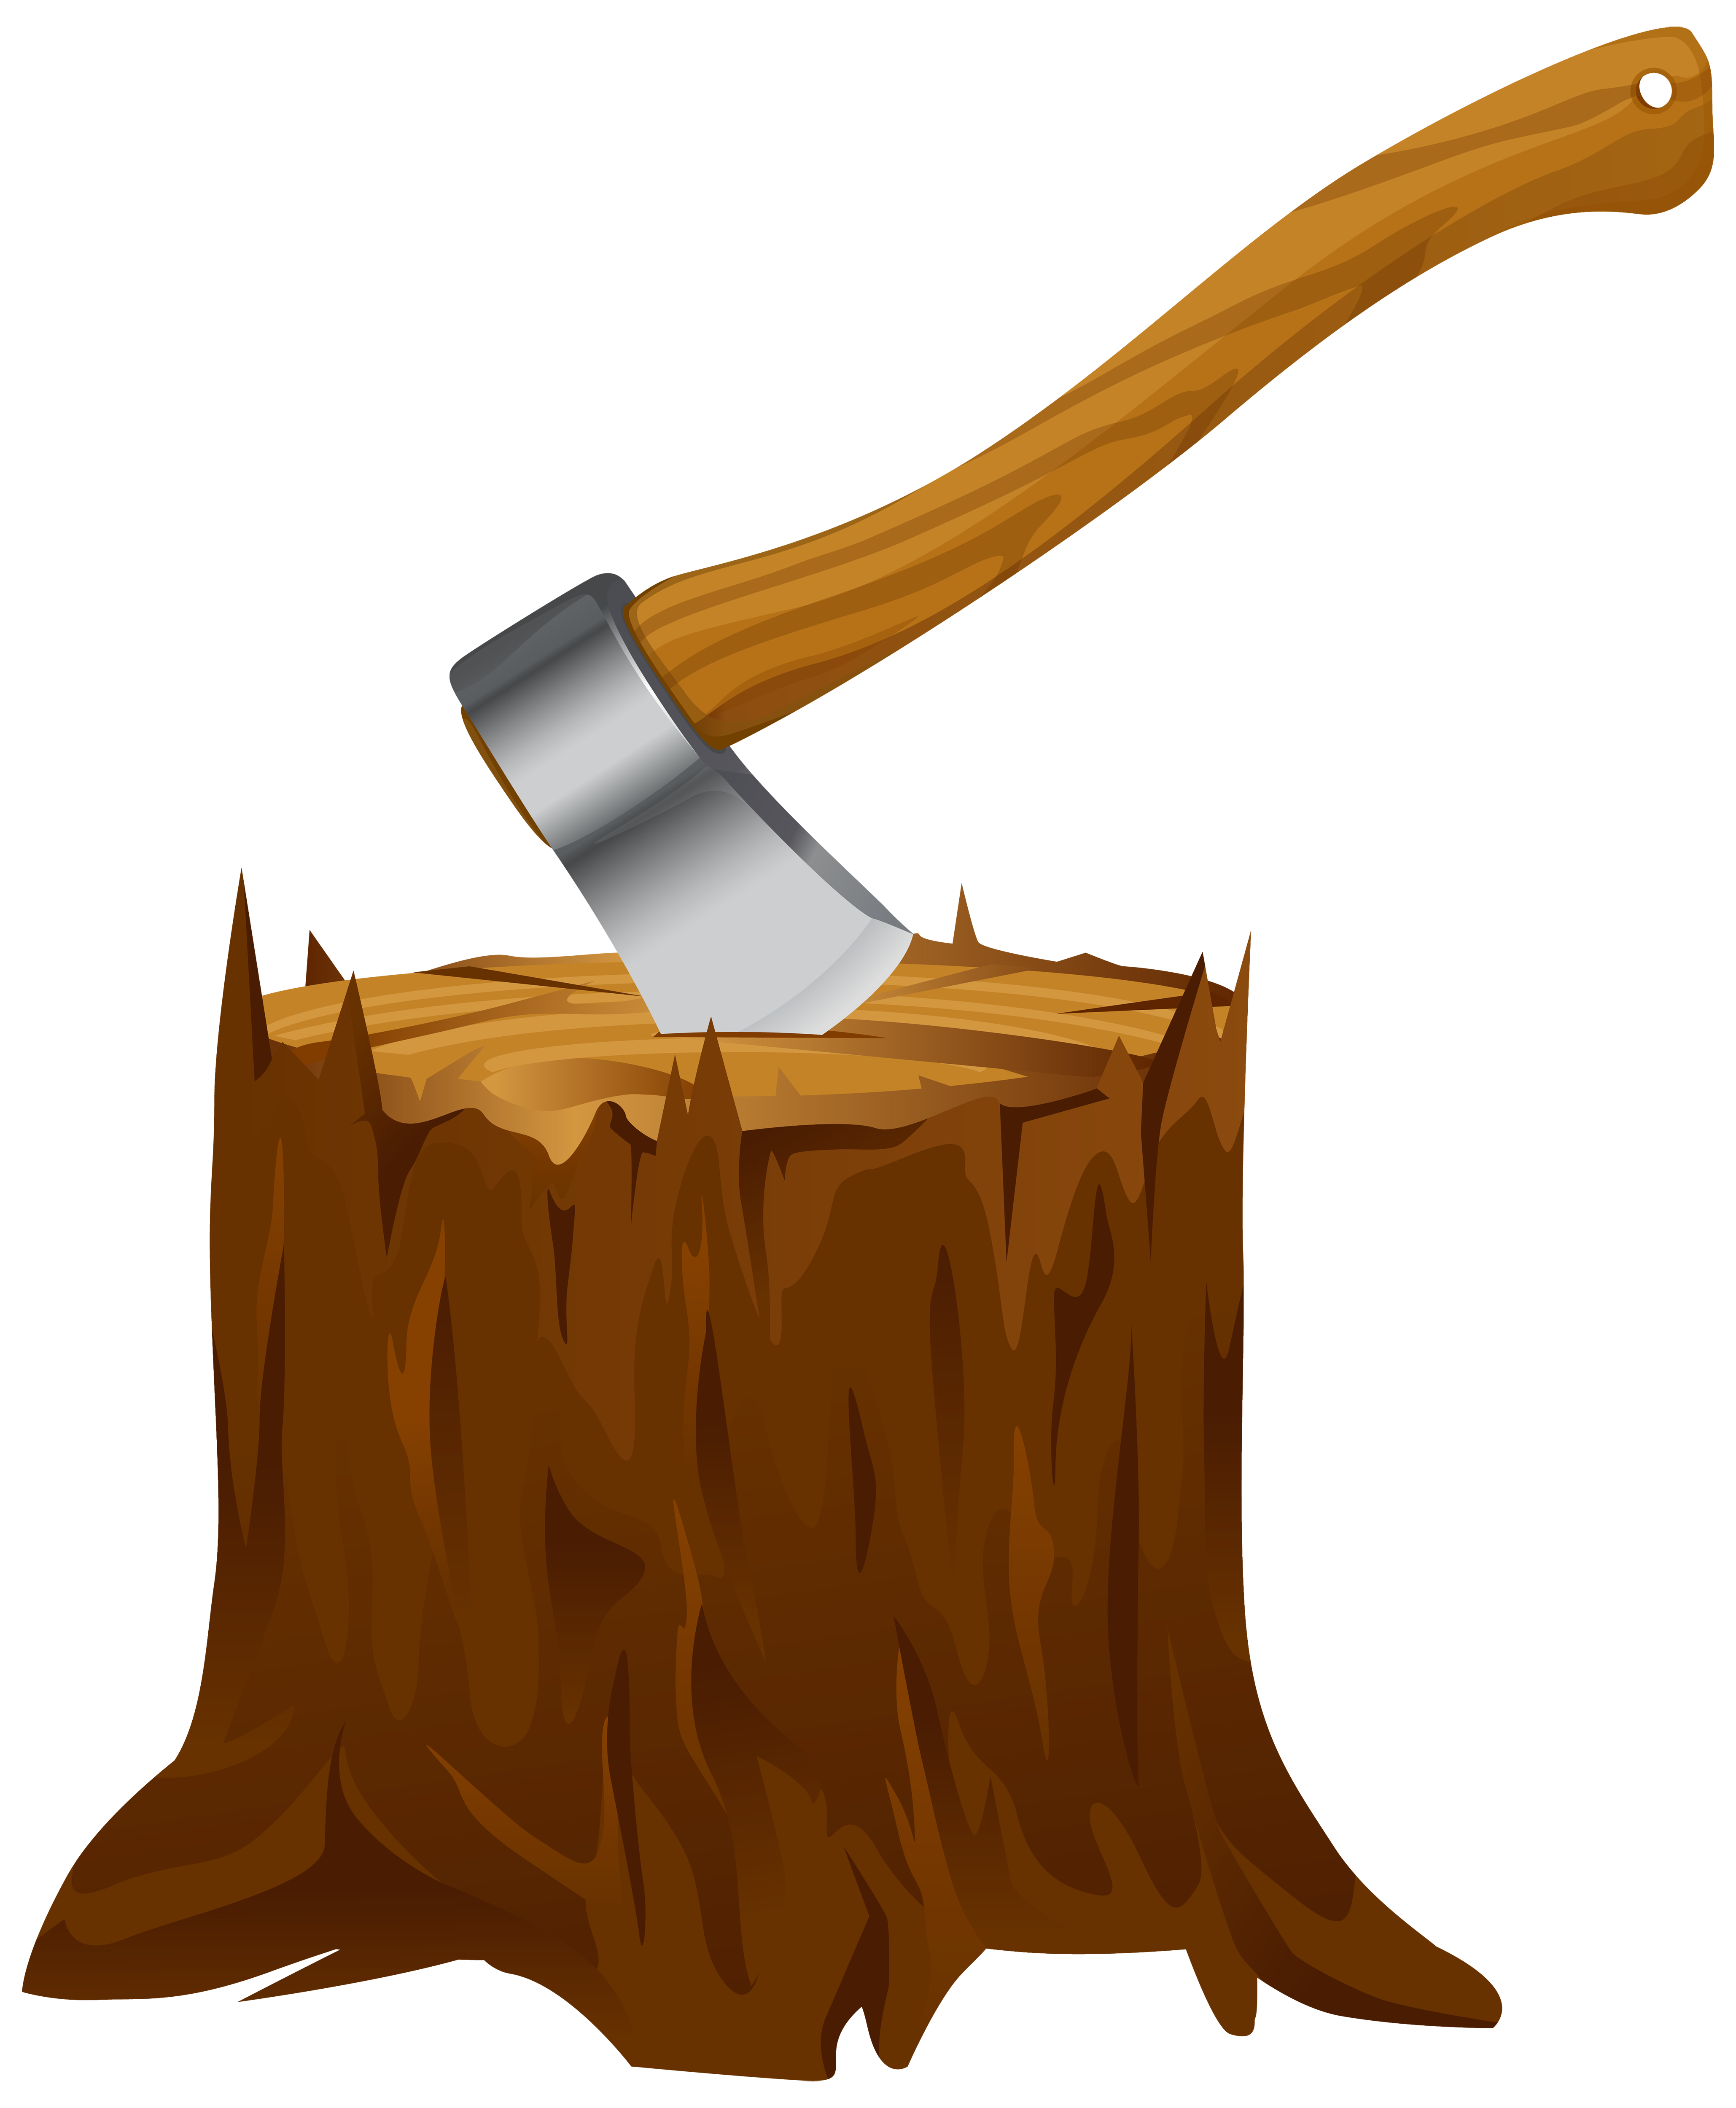 Axe clipart. Tree stump with png